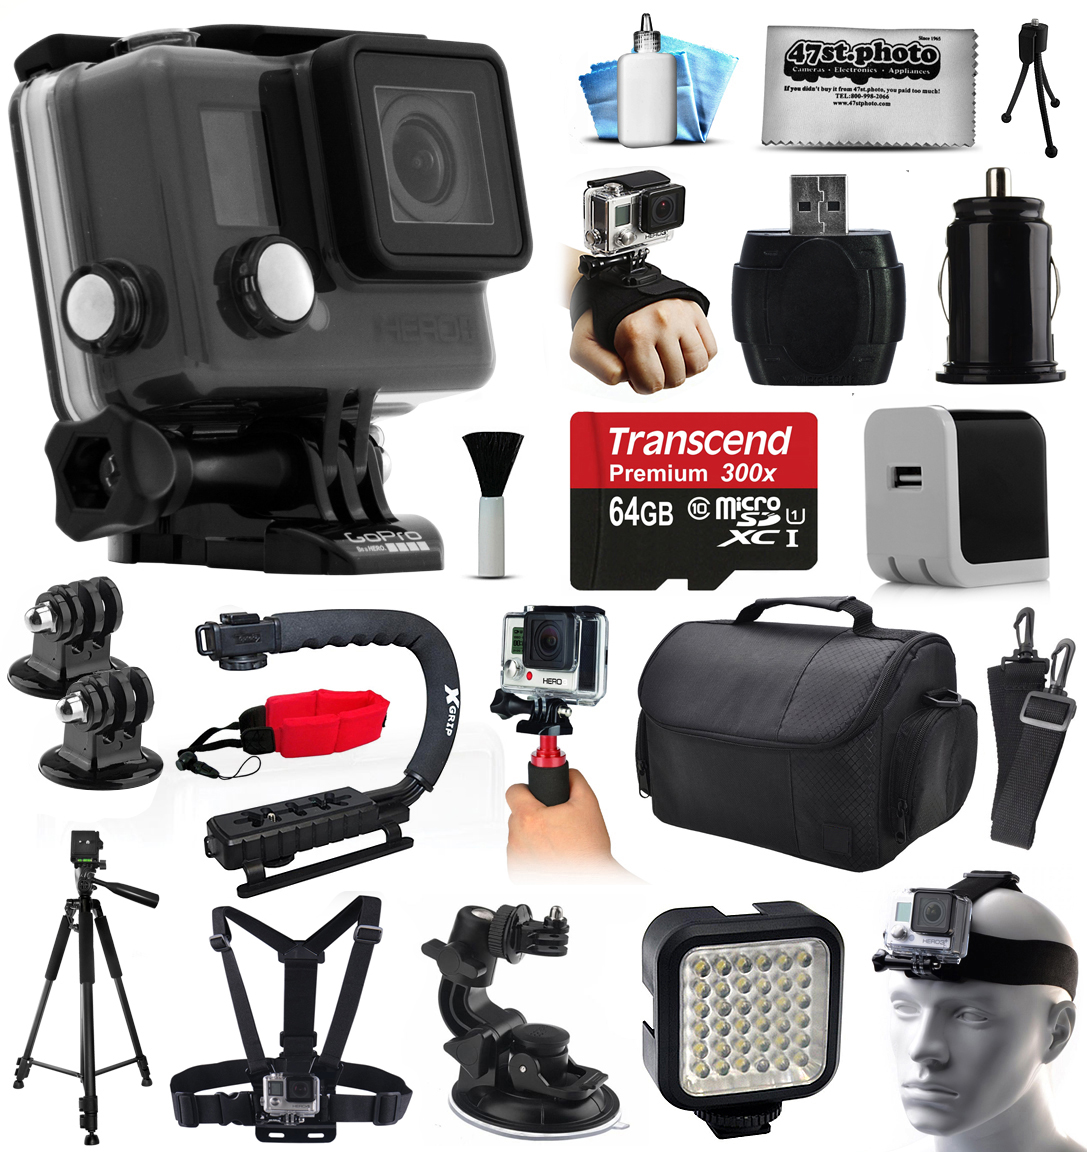 GoPro HERO+ LCD Camera Camcorder (CHDHB-101) with Professional Accessories Kit includes 64GB Card + Case + Tripod + Head & Chest Strap + Home & Travel Charger + Opteka X-Grip + Car Mount + More